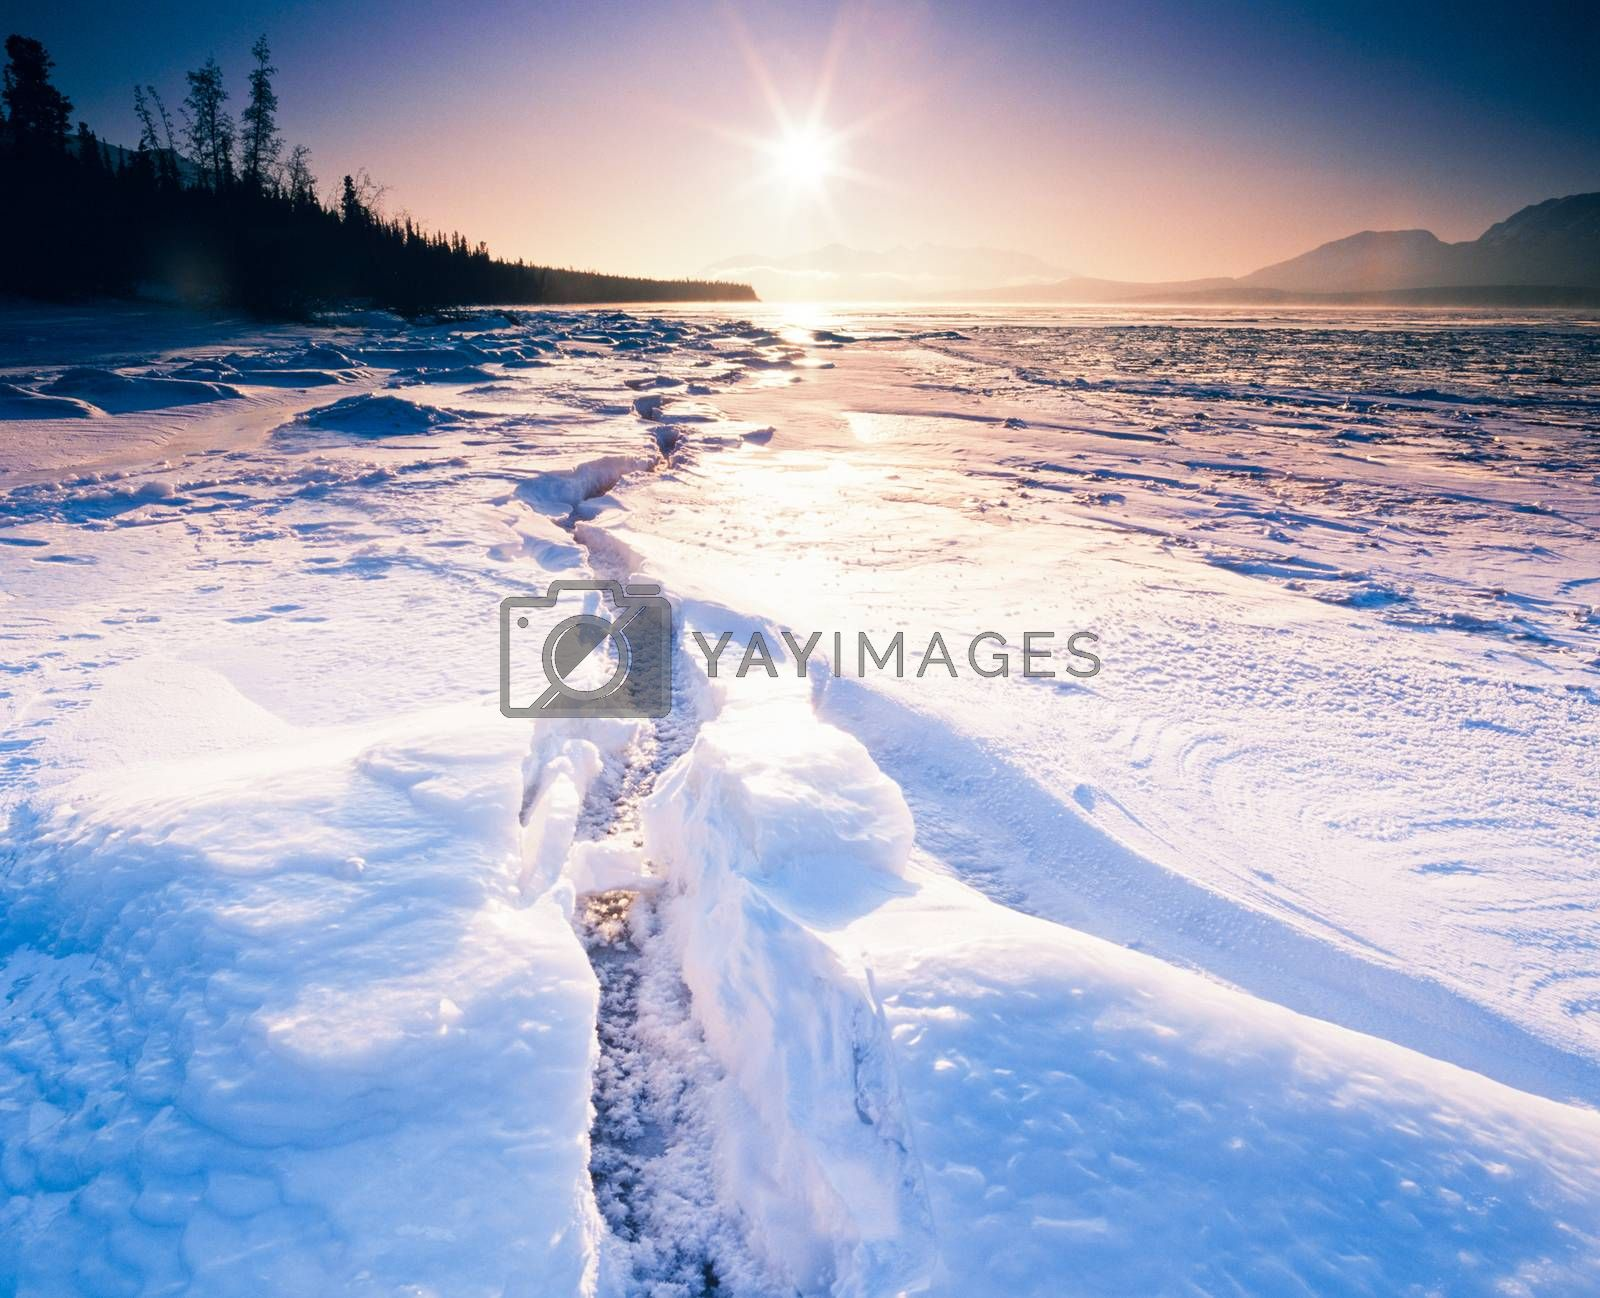 Low winter sun over large crevasse in shore ice of frozen Tagish Lake, Yukon Territory, Canada